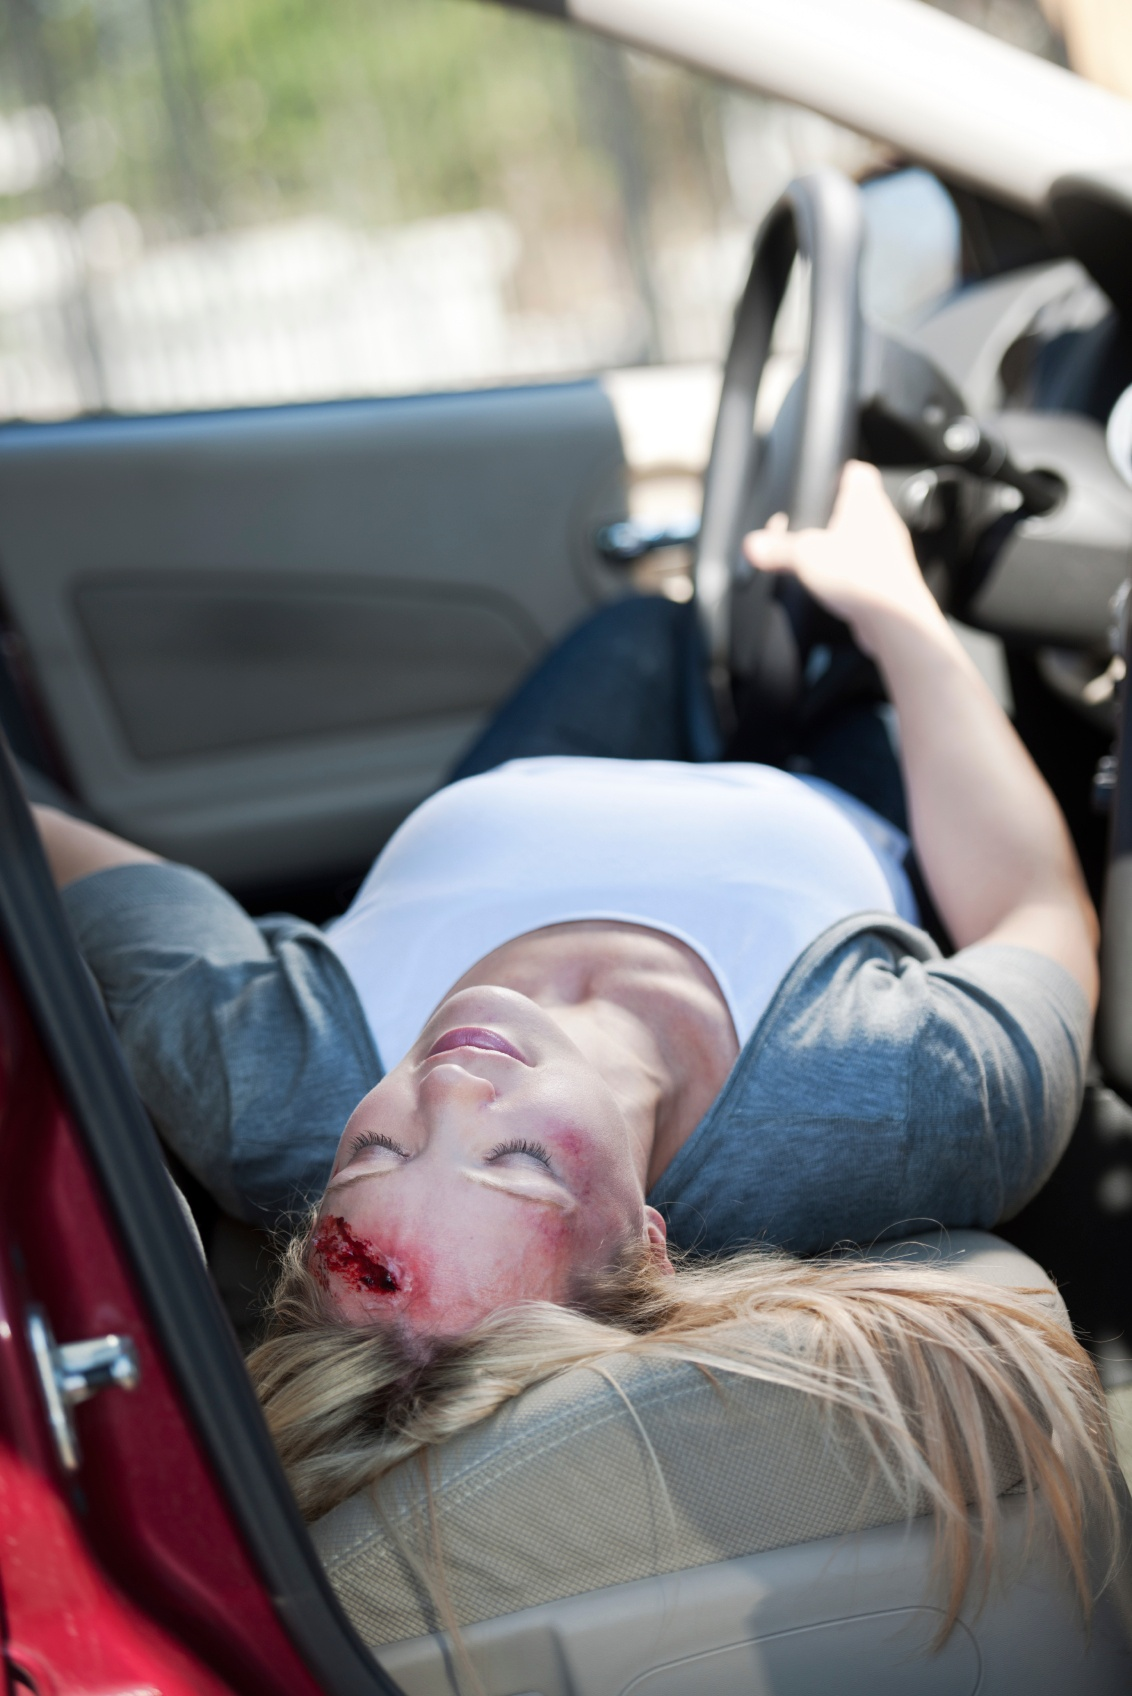 Common Bodily Injuries From a Car Accident